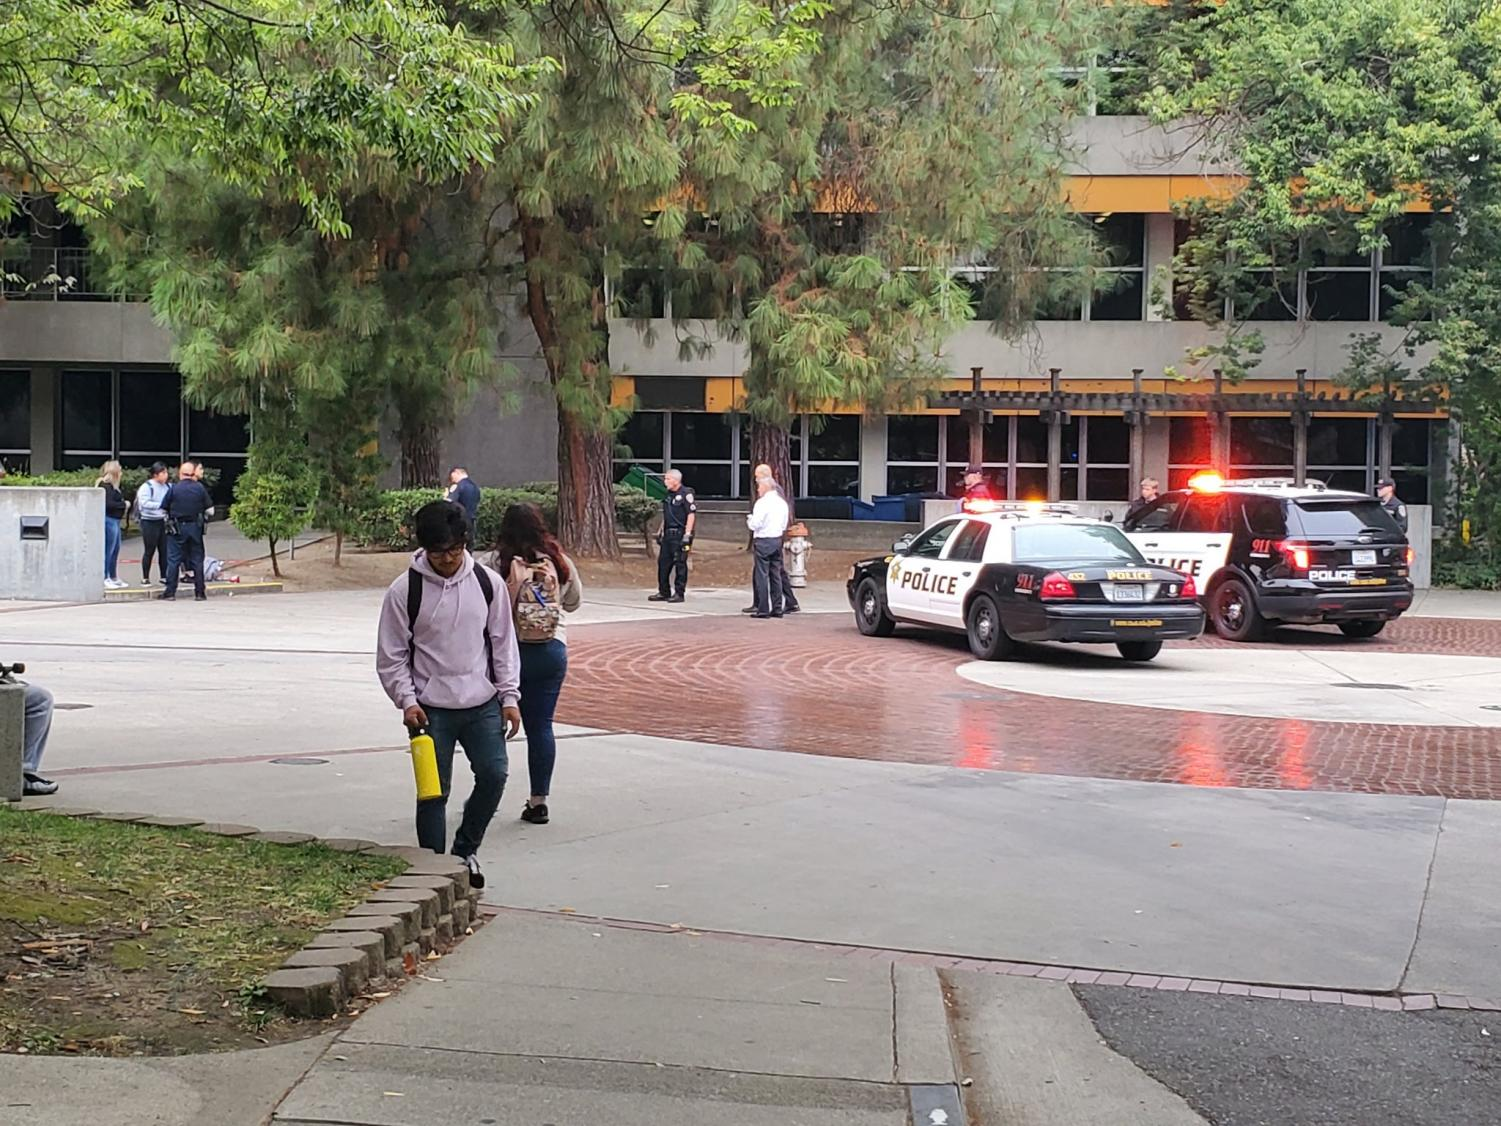 Police responding to a man having a seizure outside of Sequoia hall on Wednesday. The man was taken to the hospital and later died, according to Jeannie Wong, vice president of University Communications.